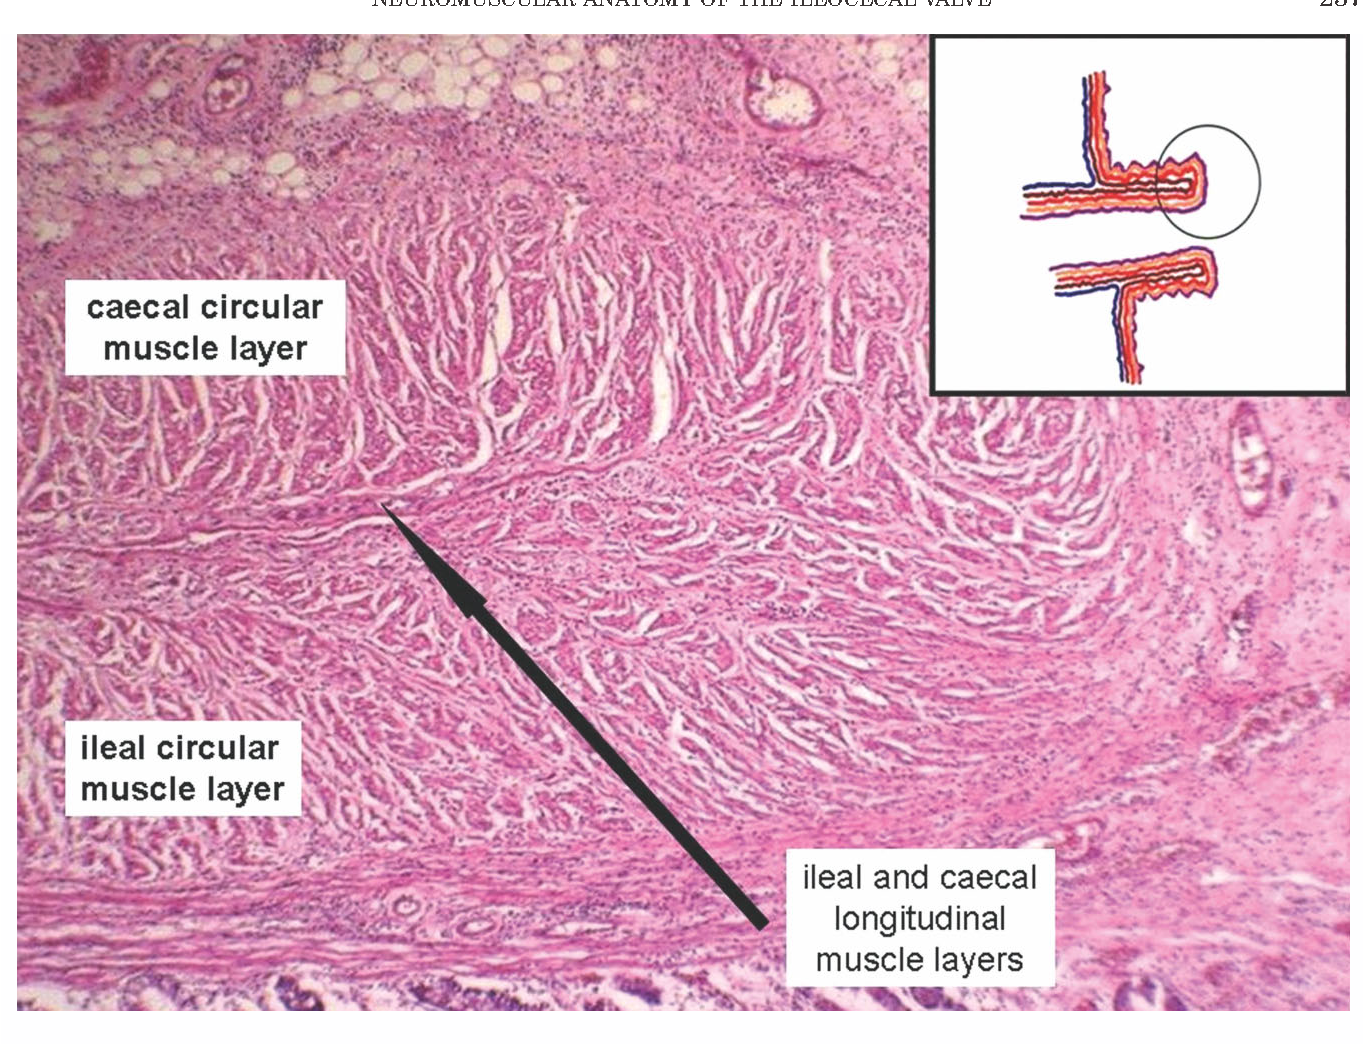 Figure 2 From New Insights Into The Neuromuscular Anatomy Of The